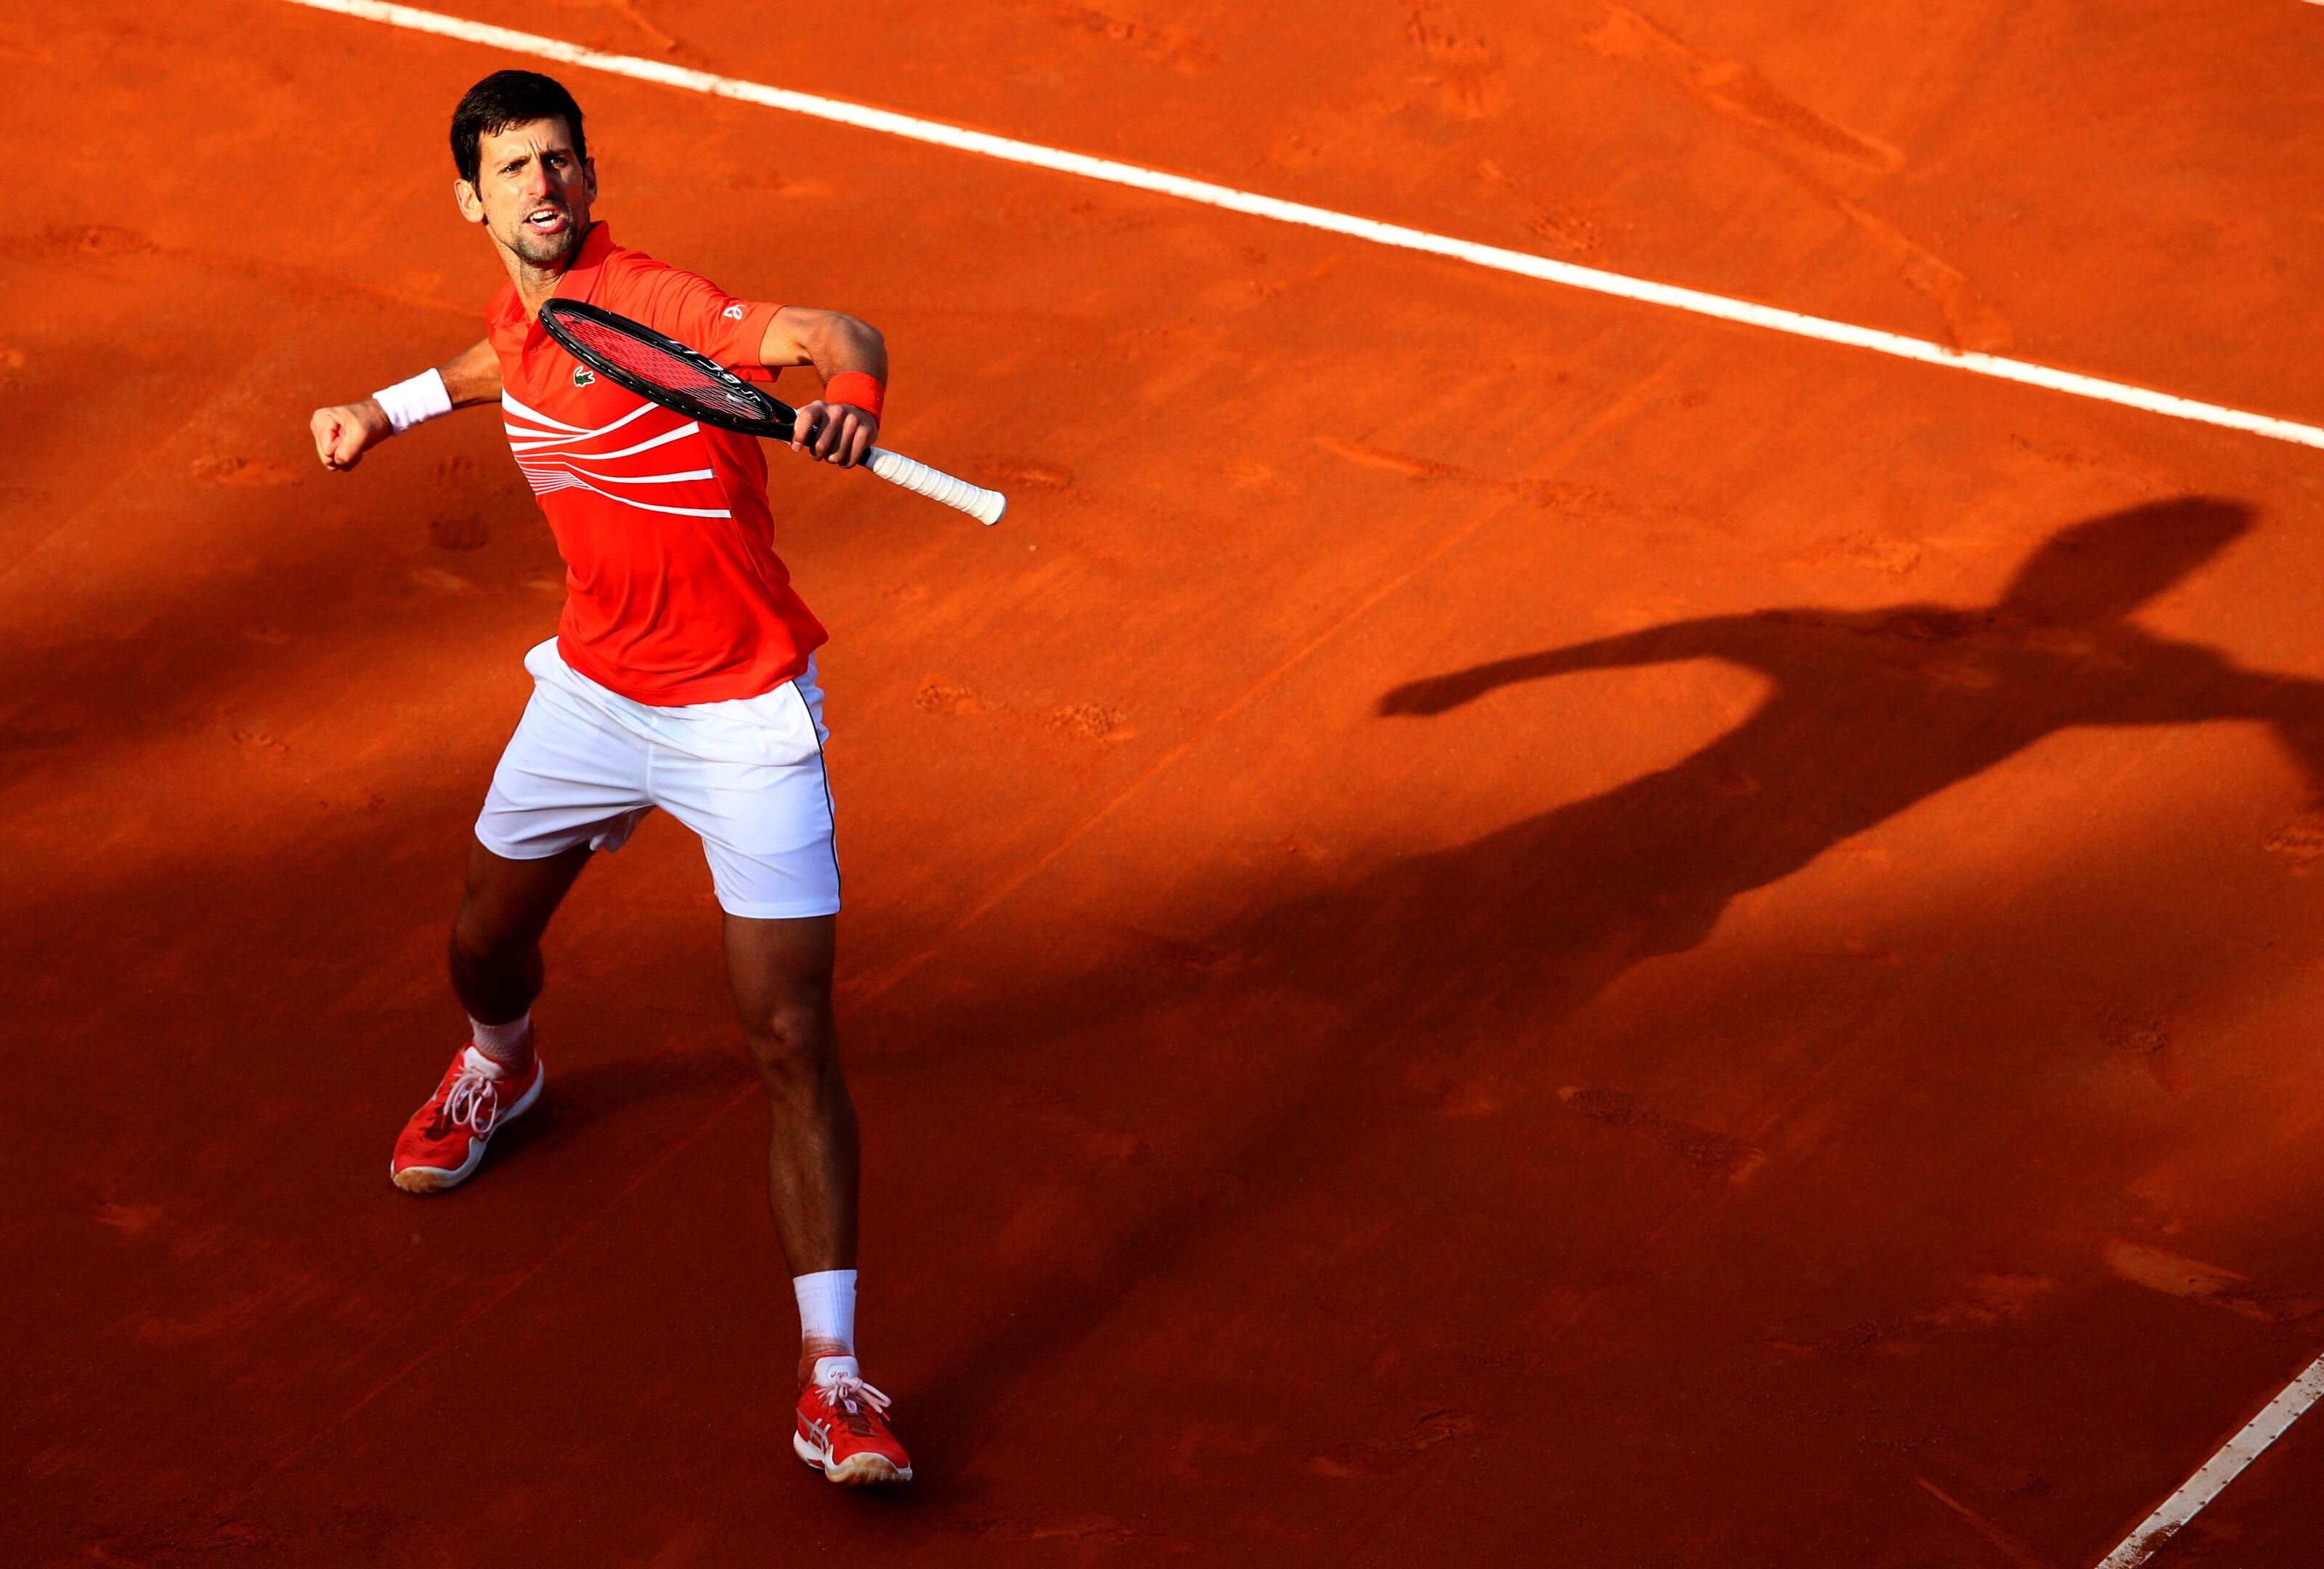 Opening round prediction for Novak Djokovic at the 2019 French Open